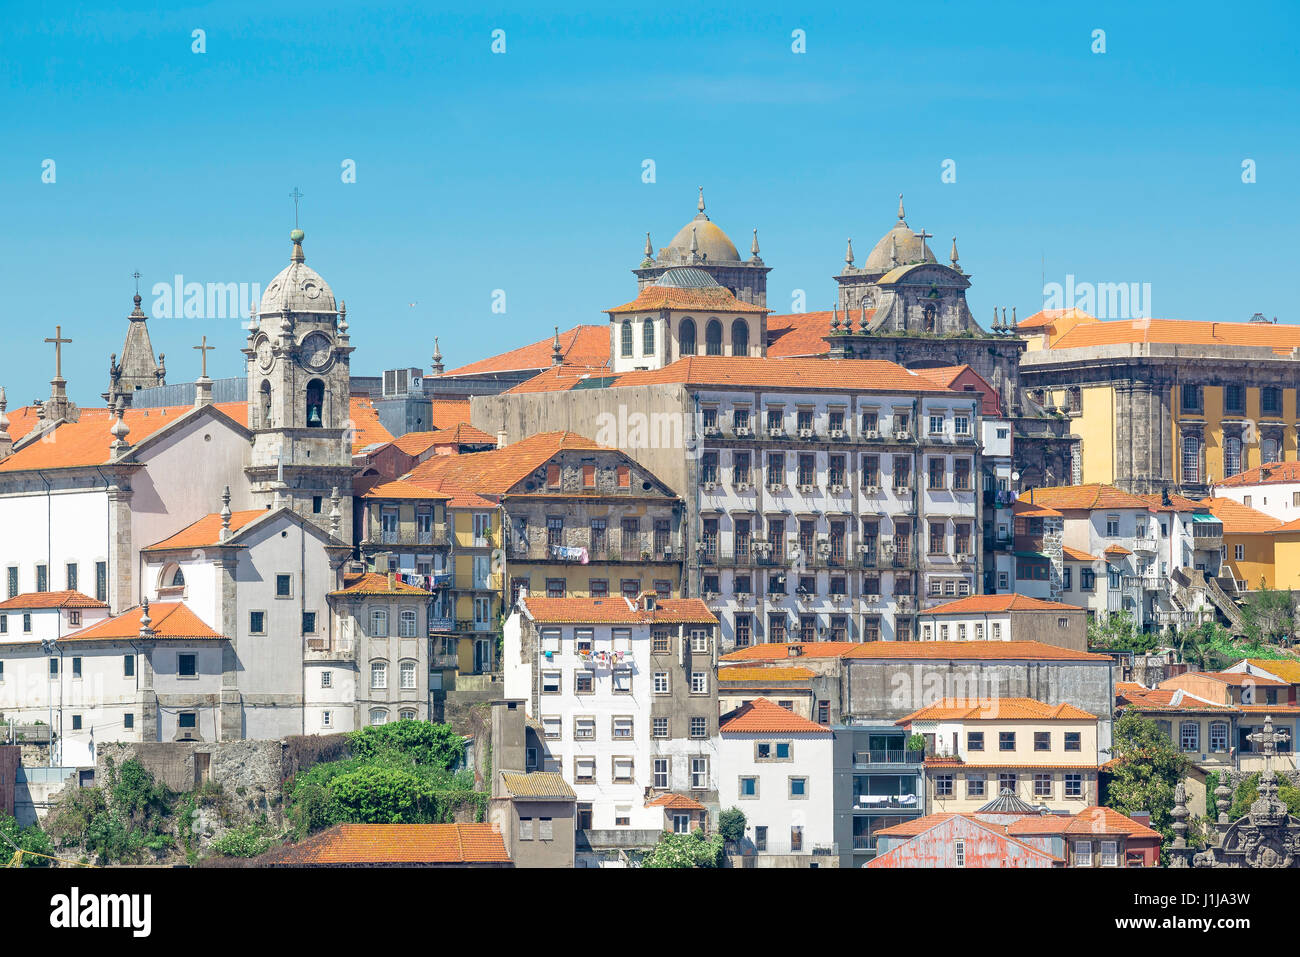 Ribeira Porto Portugal, view of the historic waterfront buildings of the old town Ribeira district in the centre - Stock Image